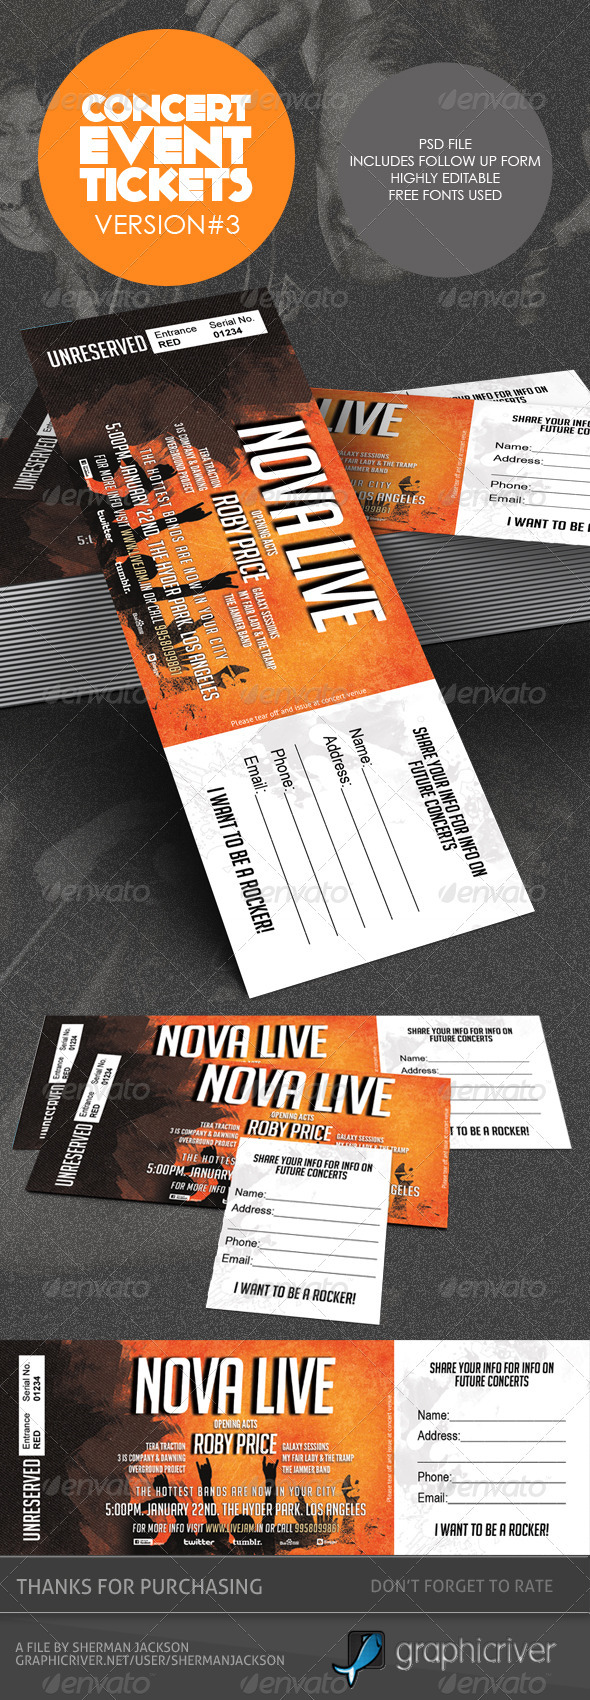 Concert Event TicketsPasses Version 3 By ShermanJackson Rock Concert Event  Ticket Prev3 3825654  Make Your Own Concert Tickets